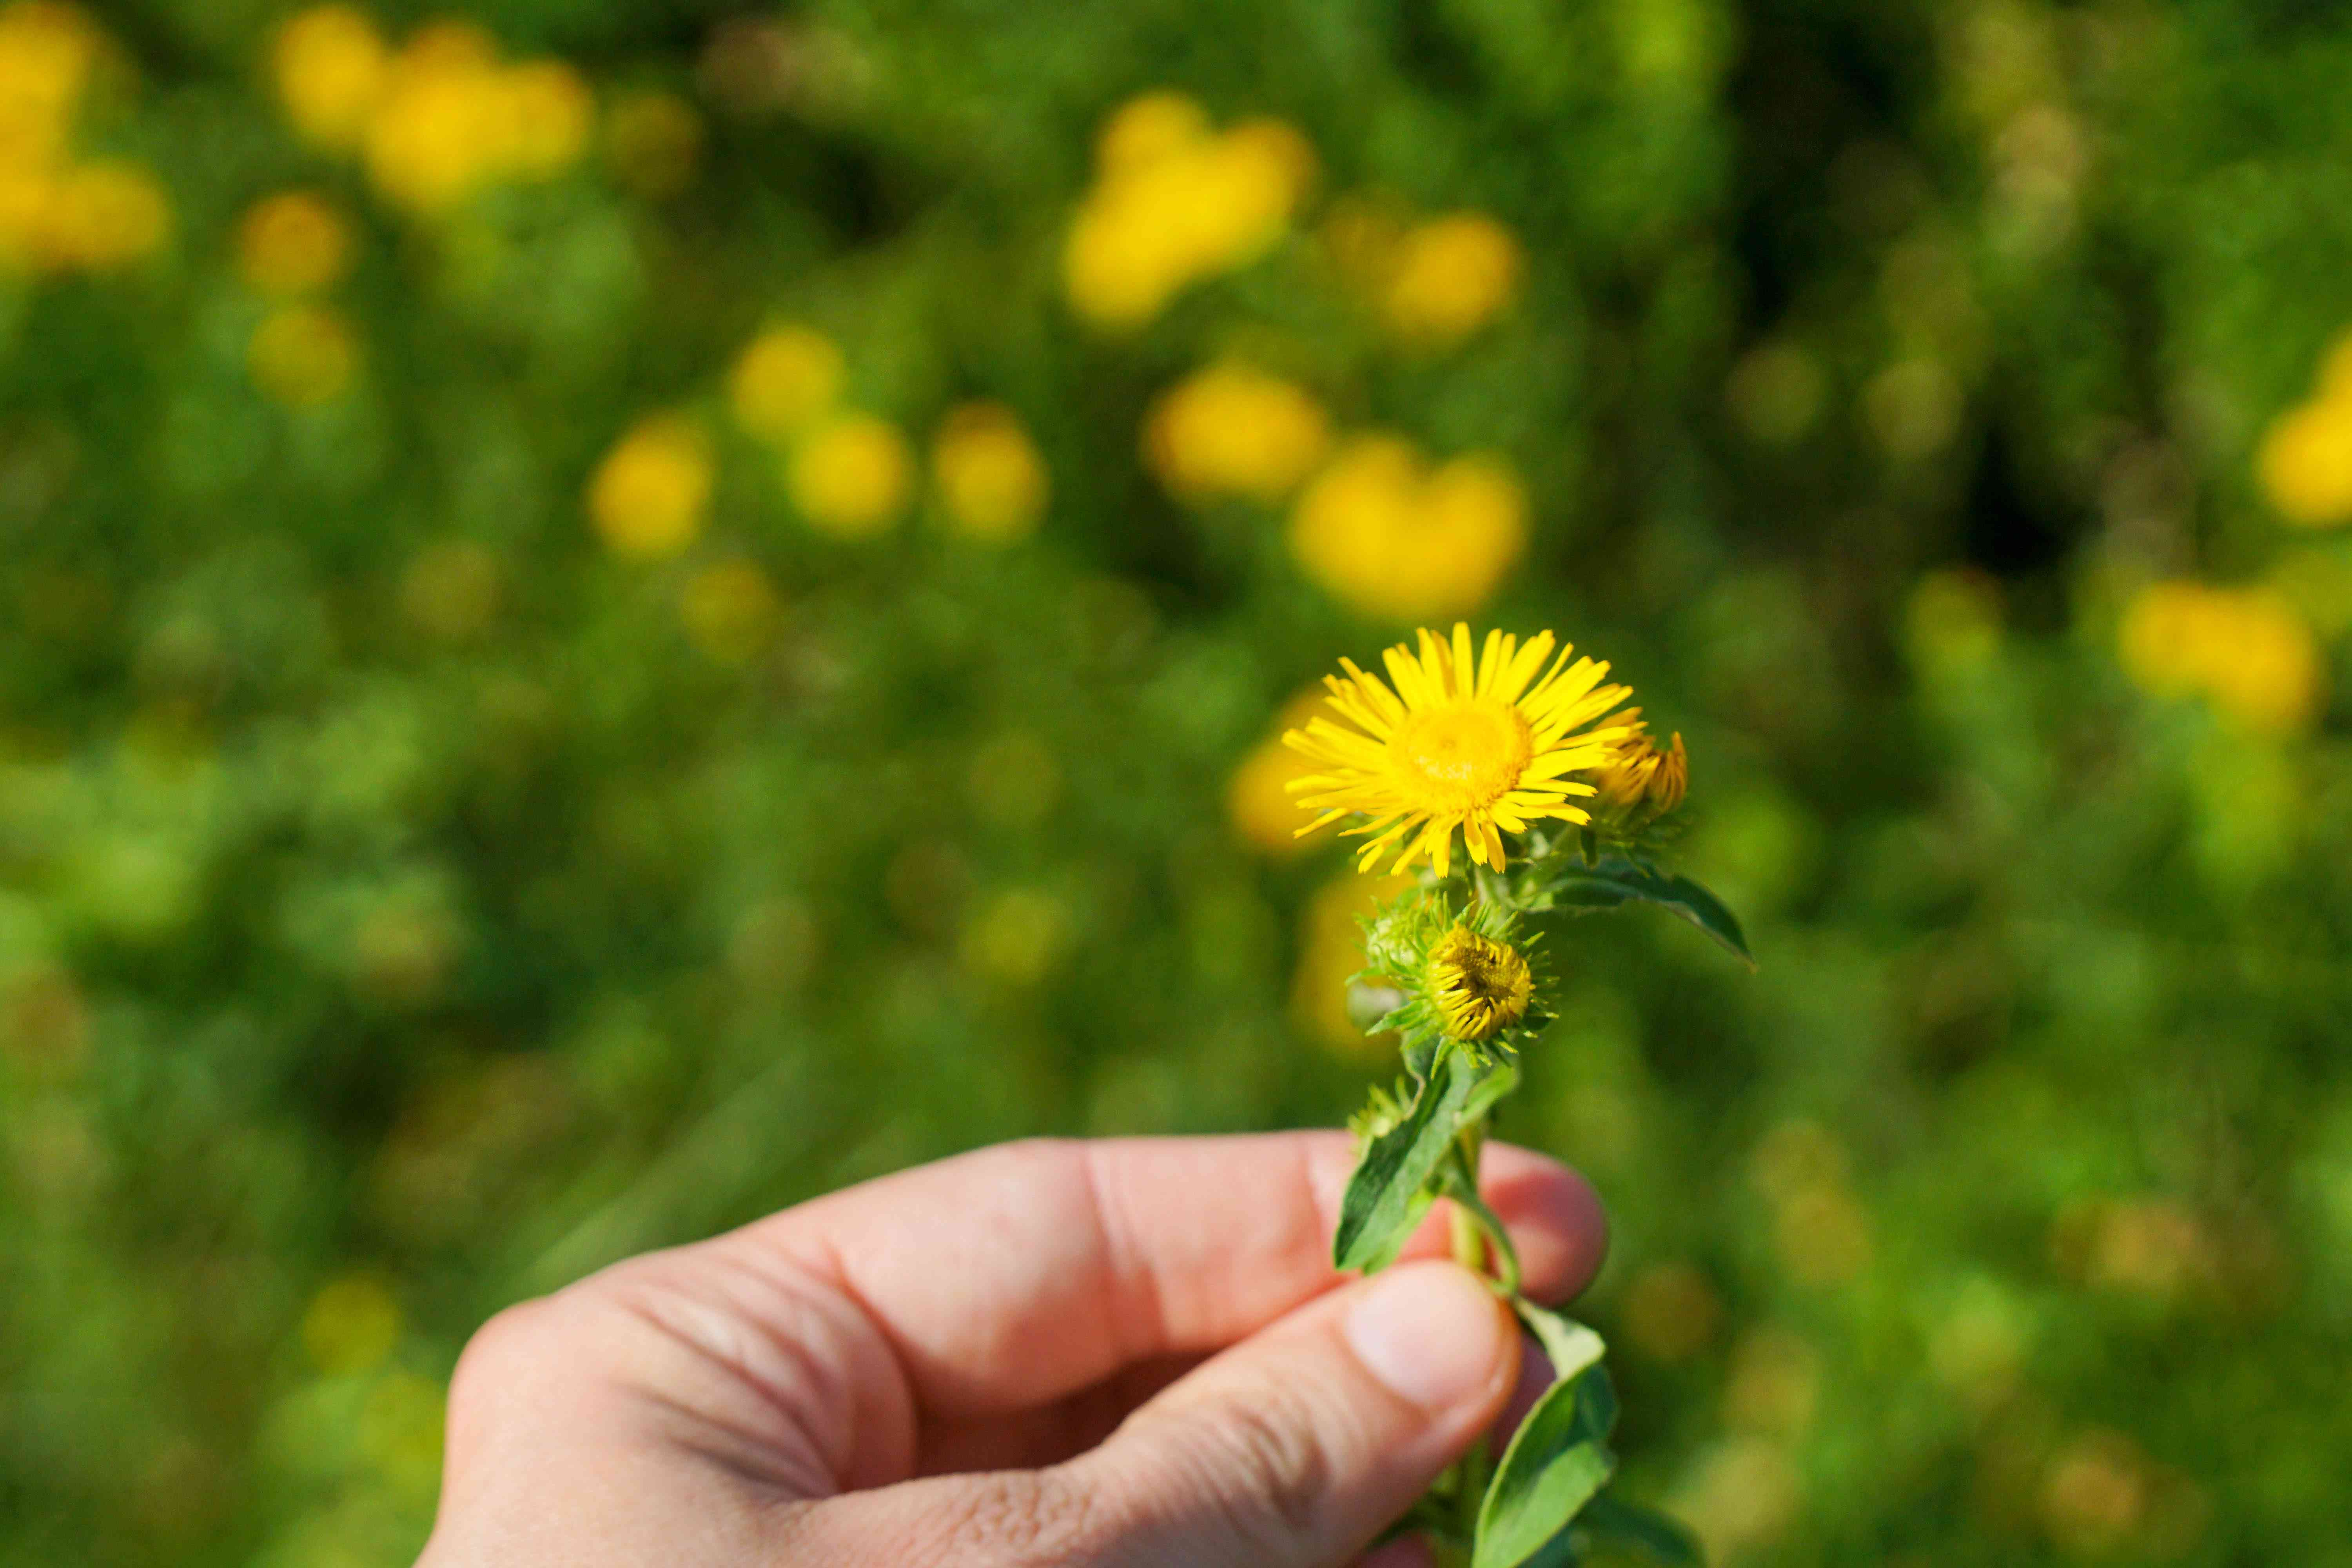 hand holds up picked small yellow flower with a background of yellow flowers behind